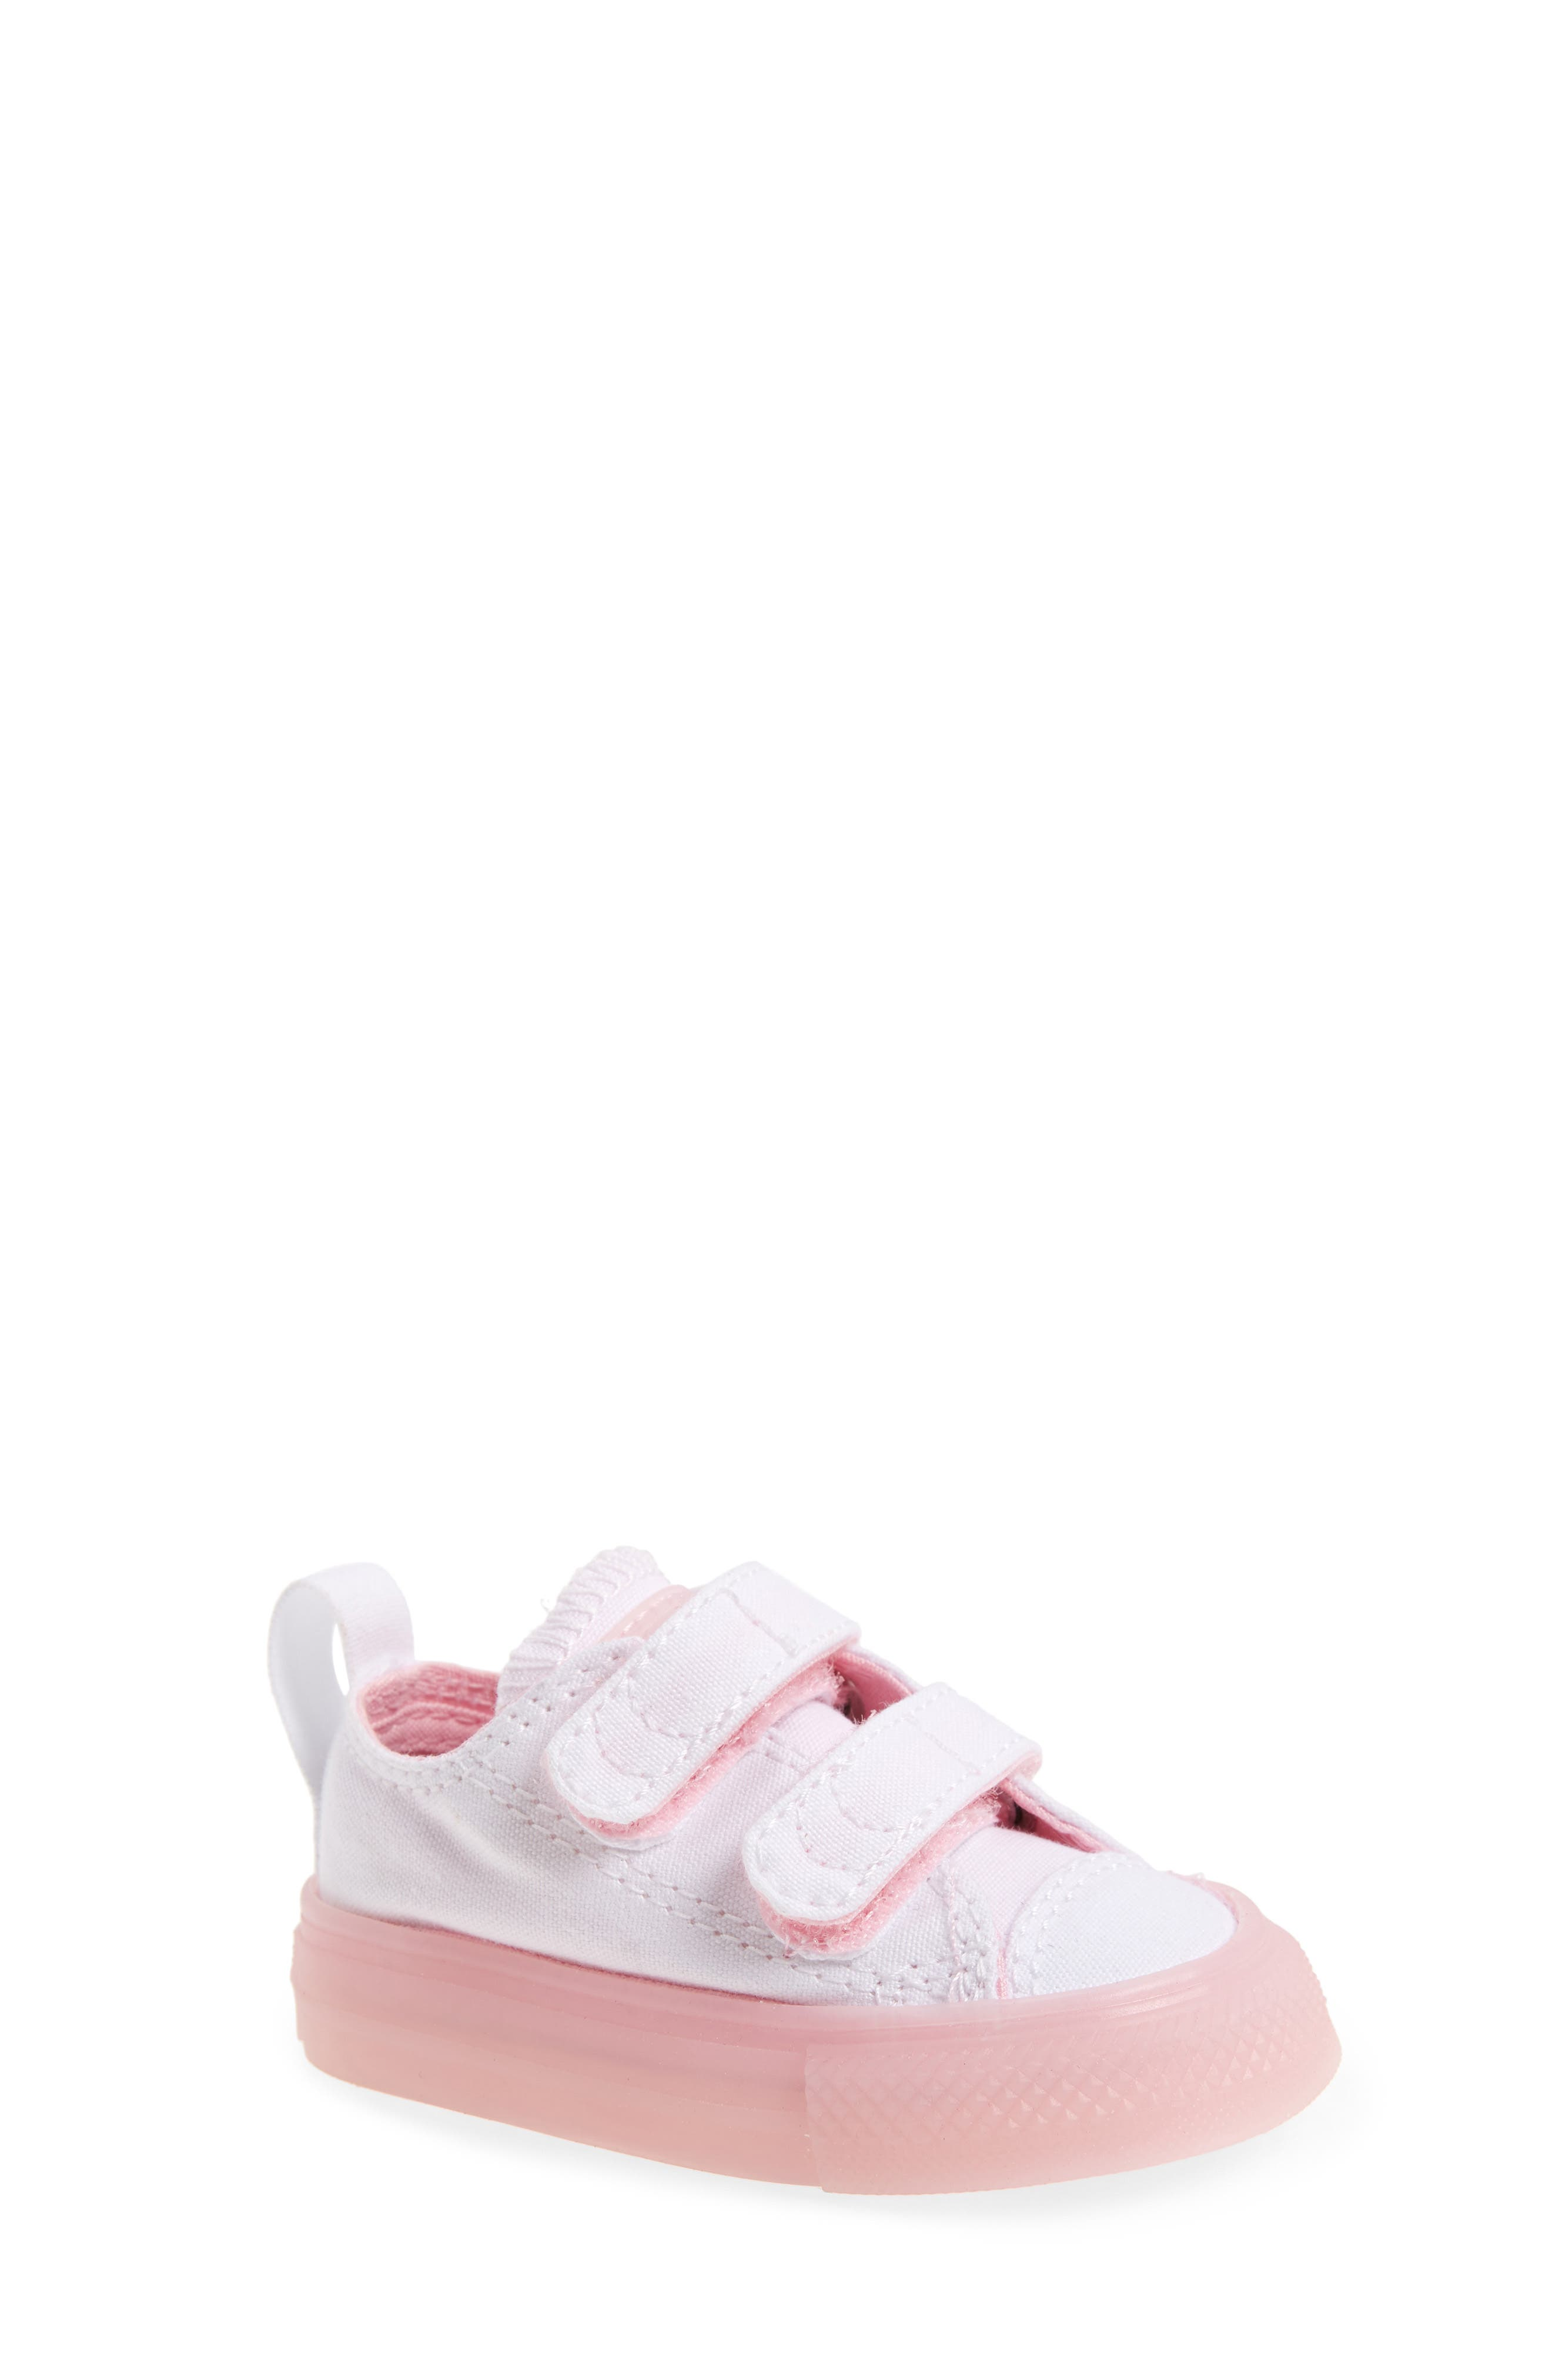 Chuck Taylor<sup>®</sup> All Star<sup>®</sup> Jelly Sneaker,                         Main,                         color, White/ Cherry